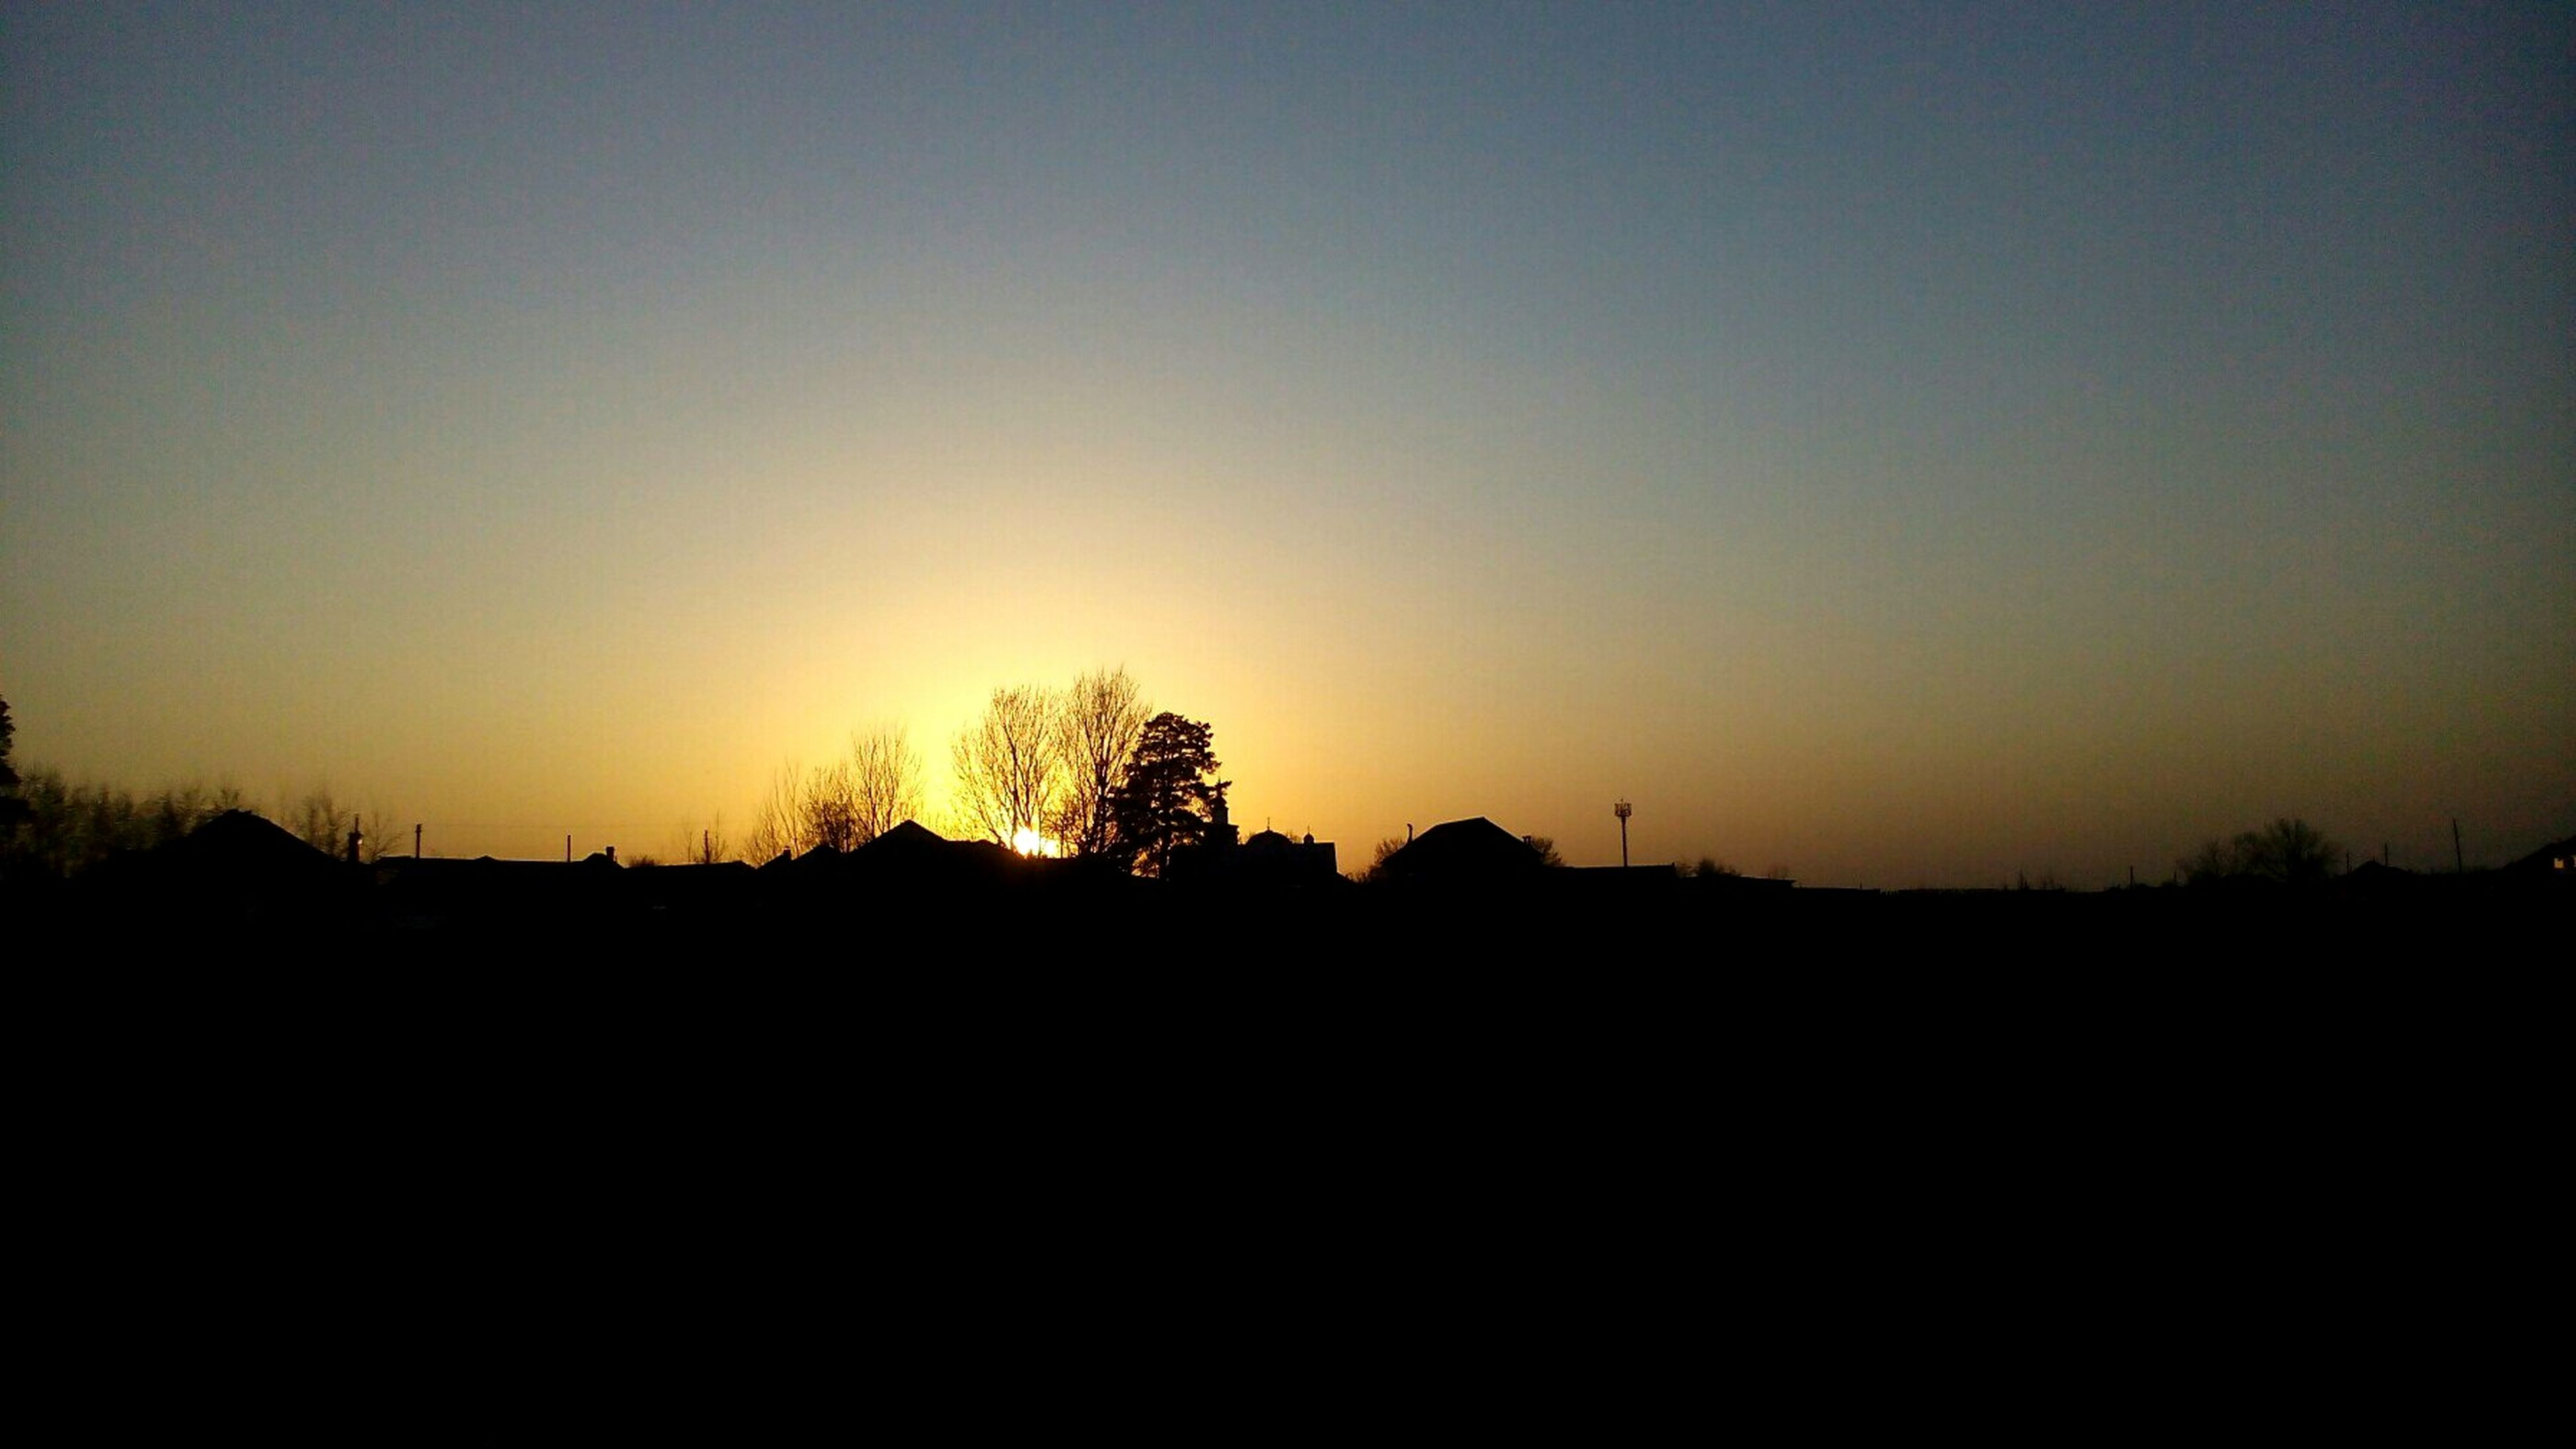 silhouette, sunset, nature, sky, no people, tranquility, beauty in nature, outdoors, tree, scenics